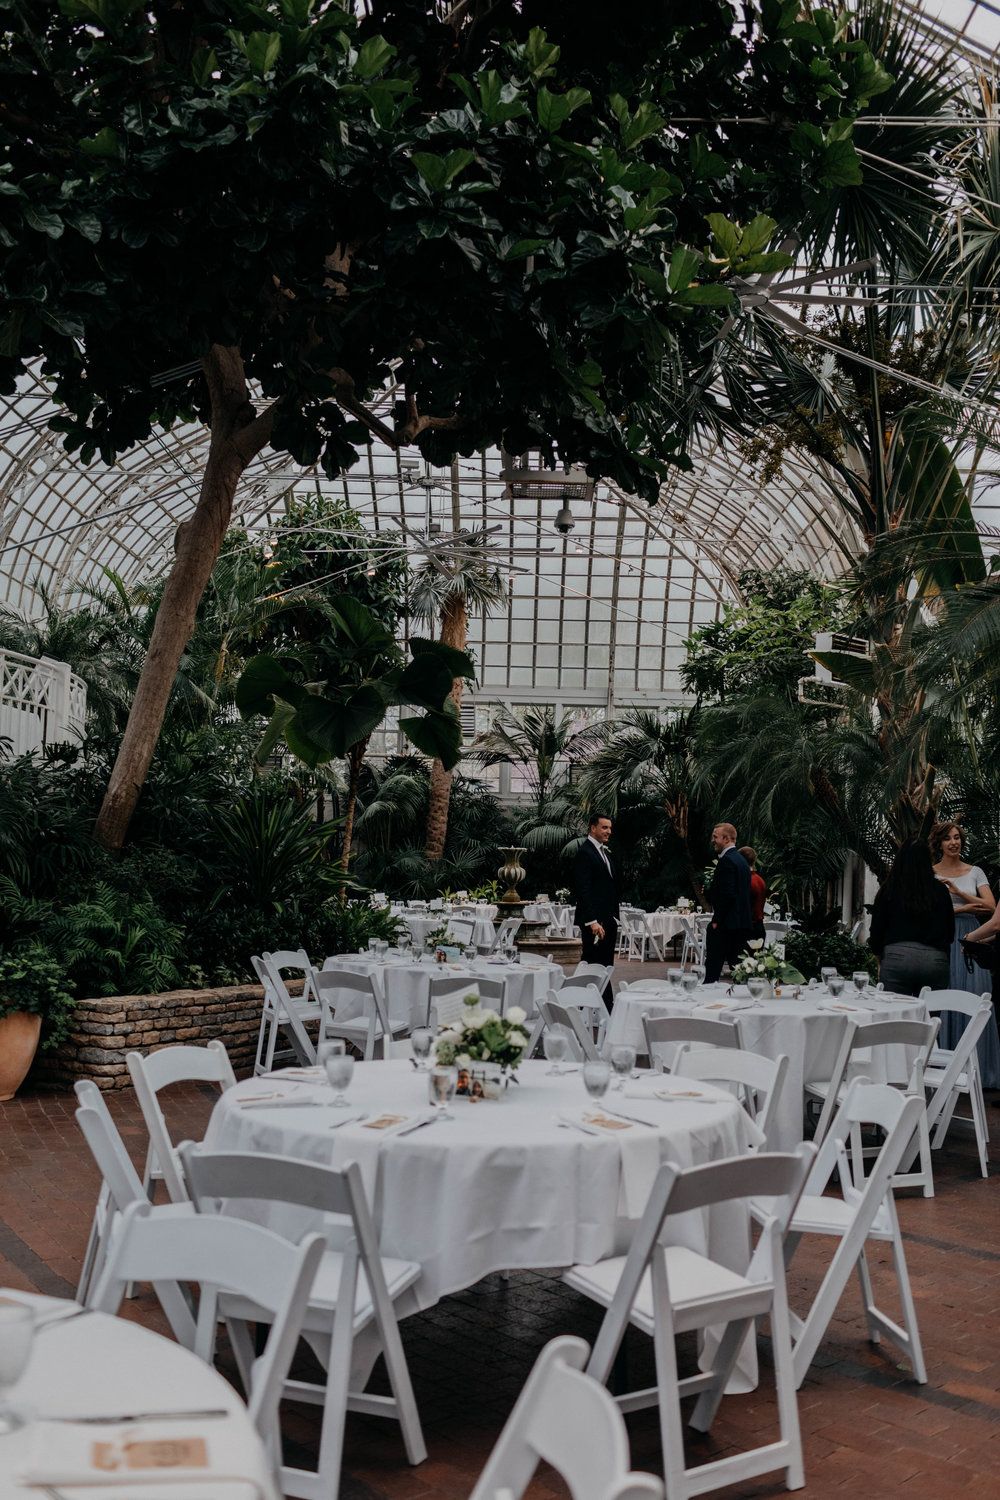 franklin park conservatory wedding columbus ohio wedding photographer grace e jones photography11.jpg